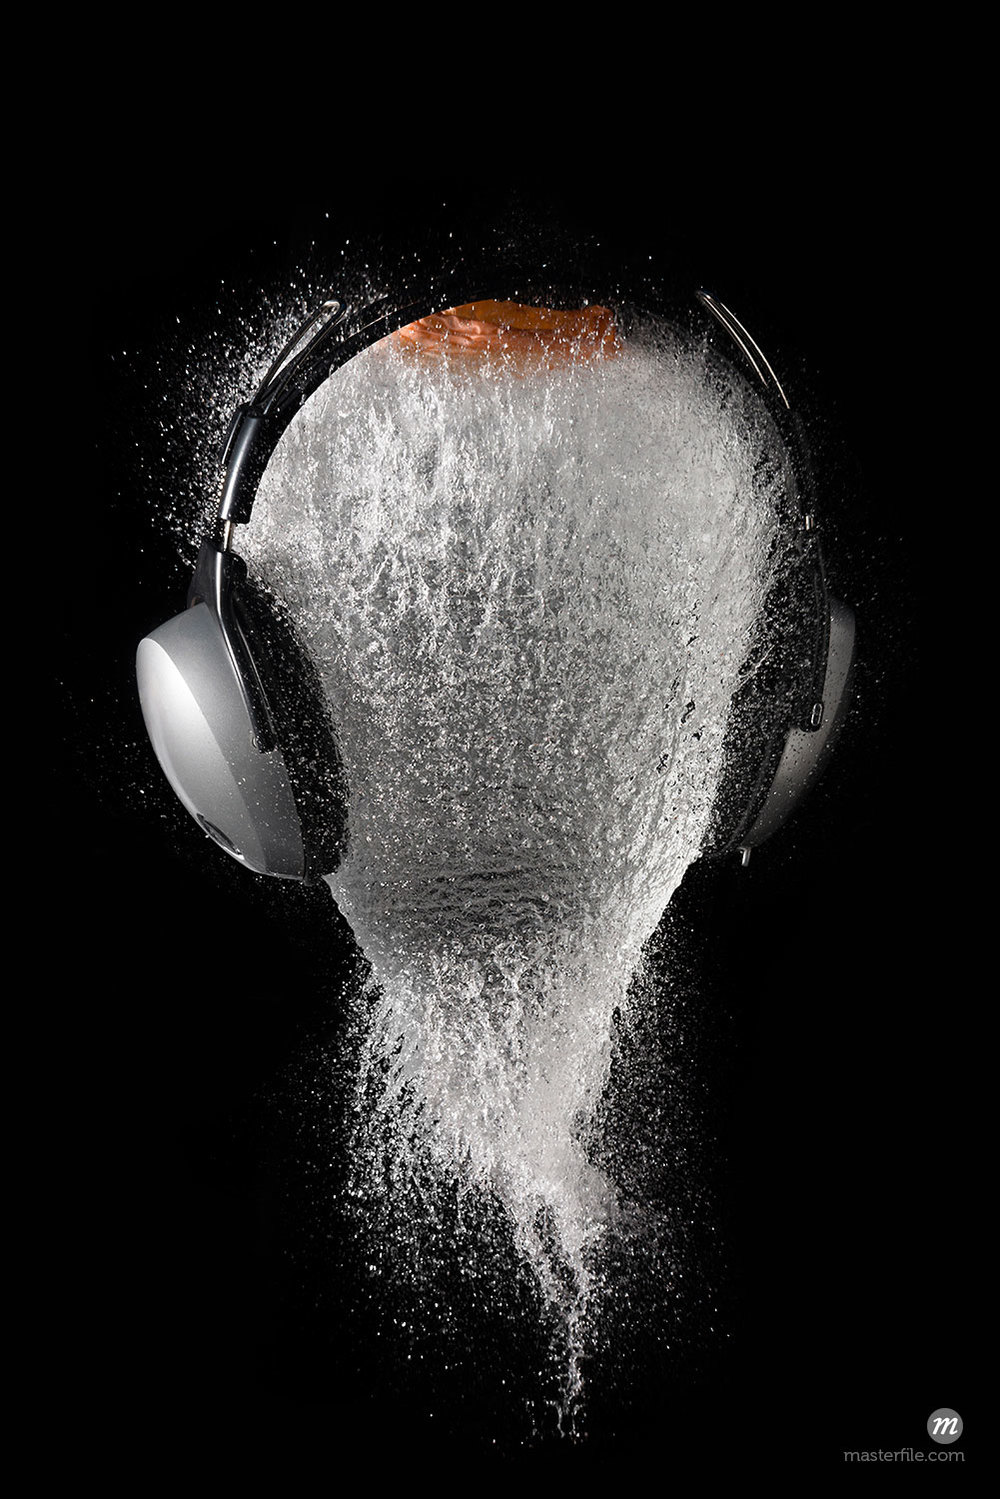 Conceptual image of the explosion of a head with headphones © Jose Luis Stephens / Masterfile